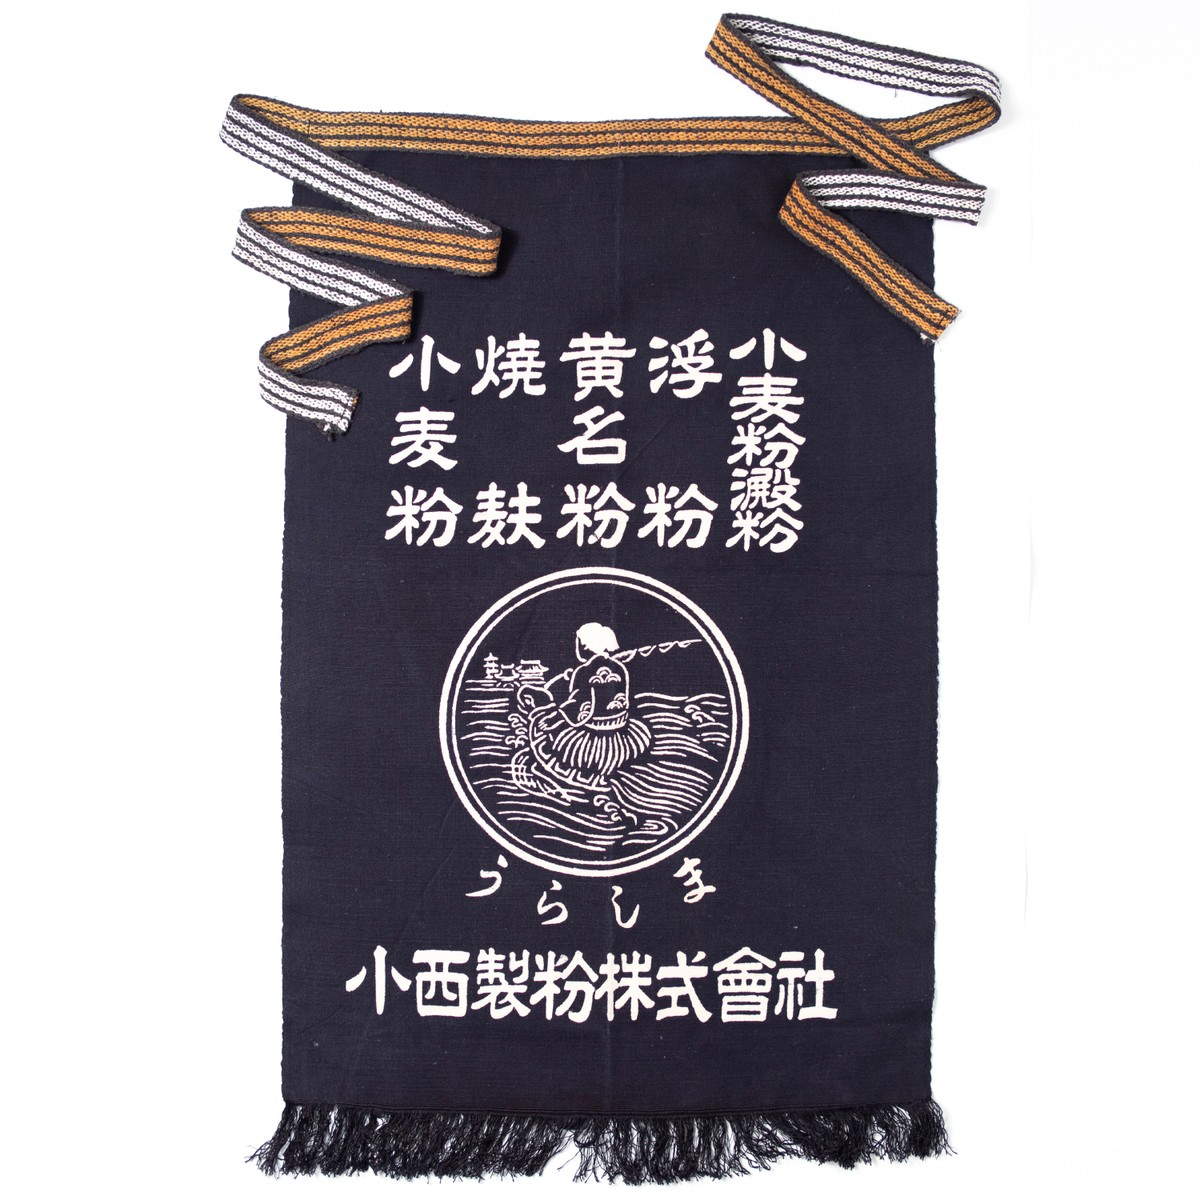 Photo of Vintage Maekake Apron: Konishi Flour Mill